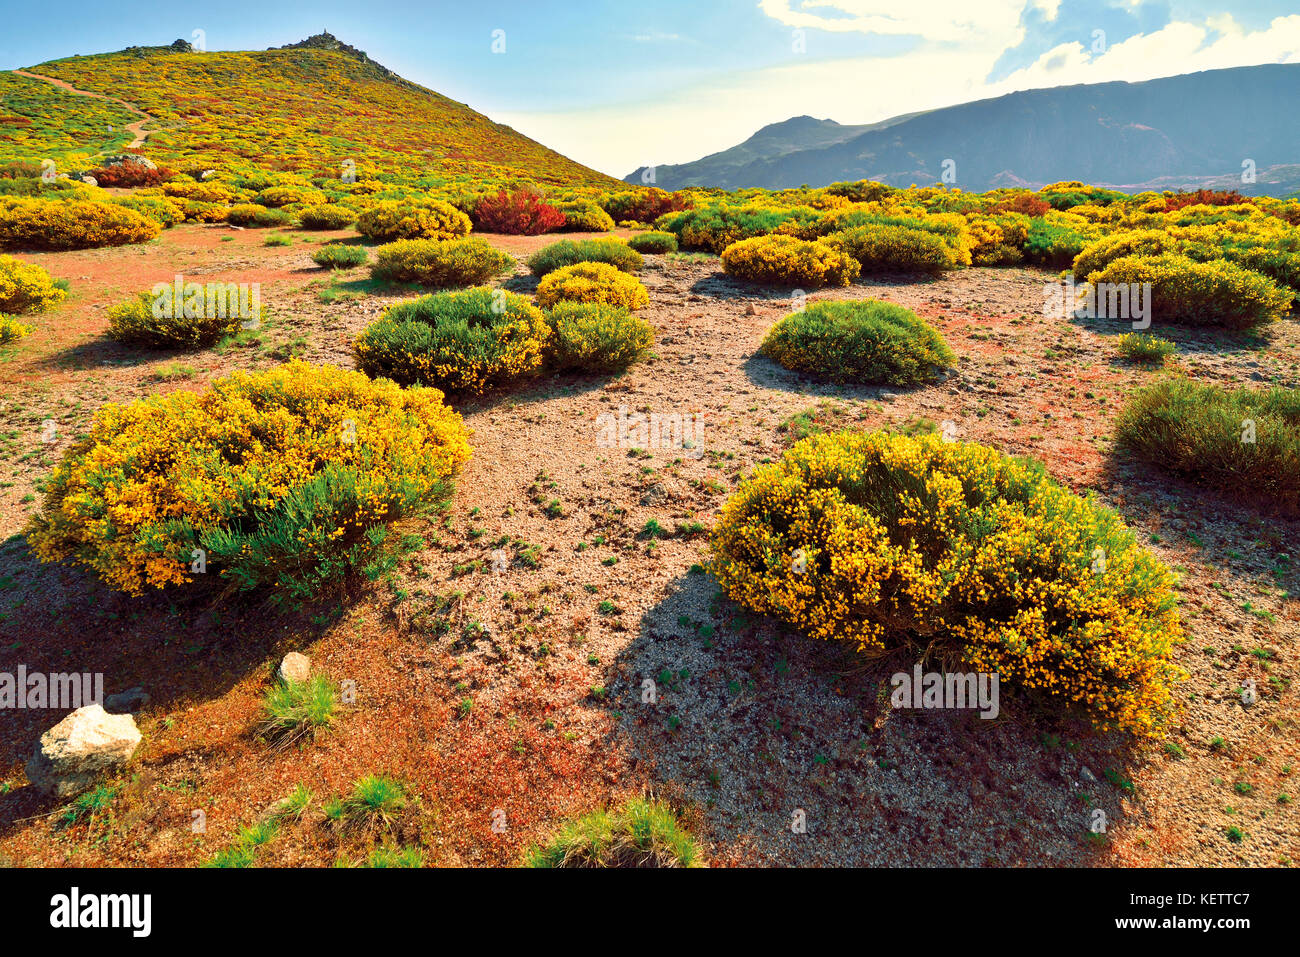 Nature splendor with flowering yellow and green bushes in mountain region at sping time - Stock Image